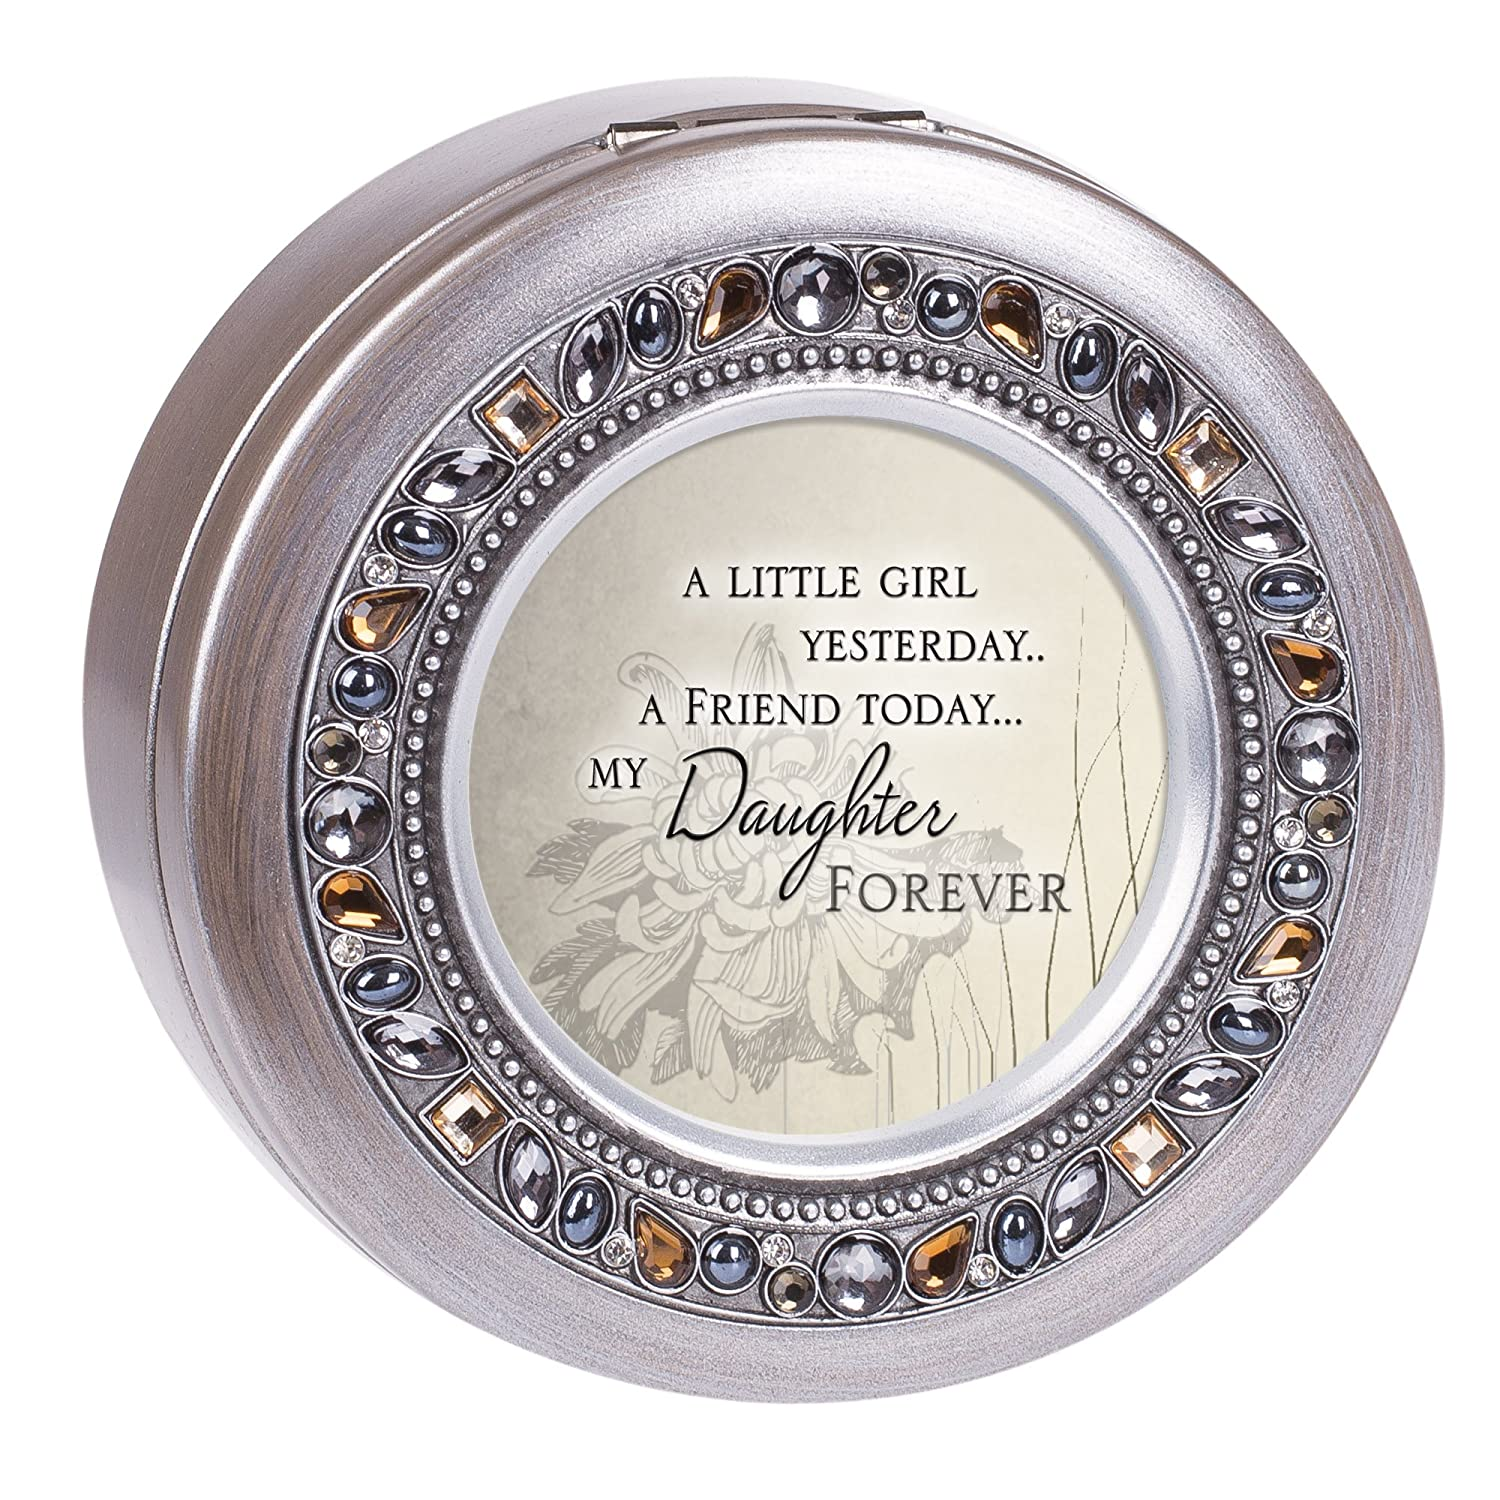 Cottage Garden Friend Today Daughter Forever Brushed Silver Round Jeweled Music Box Plays Tune Wonderful World